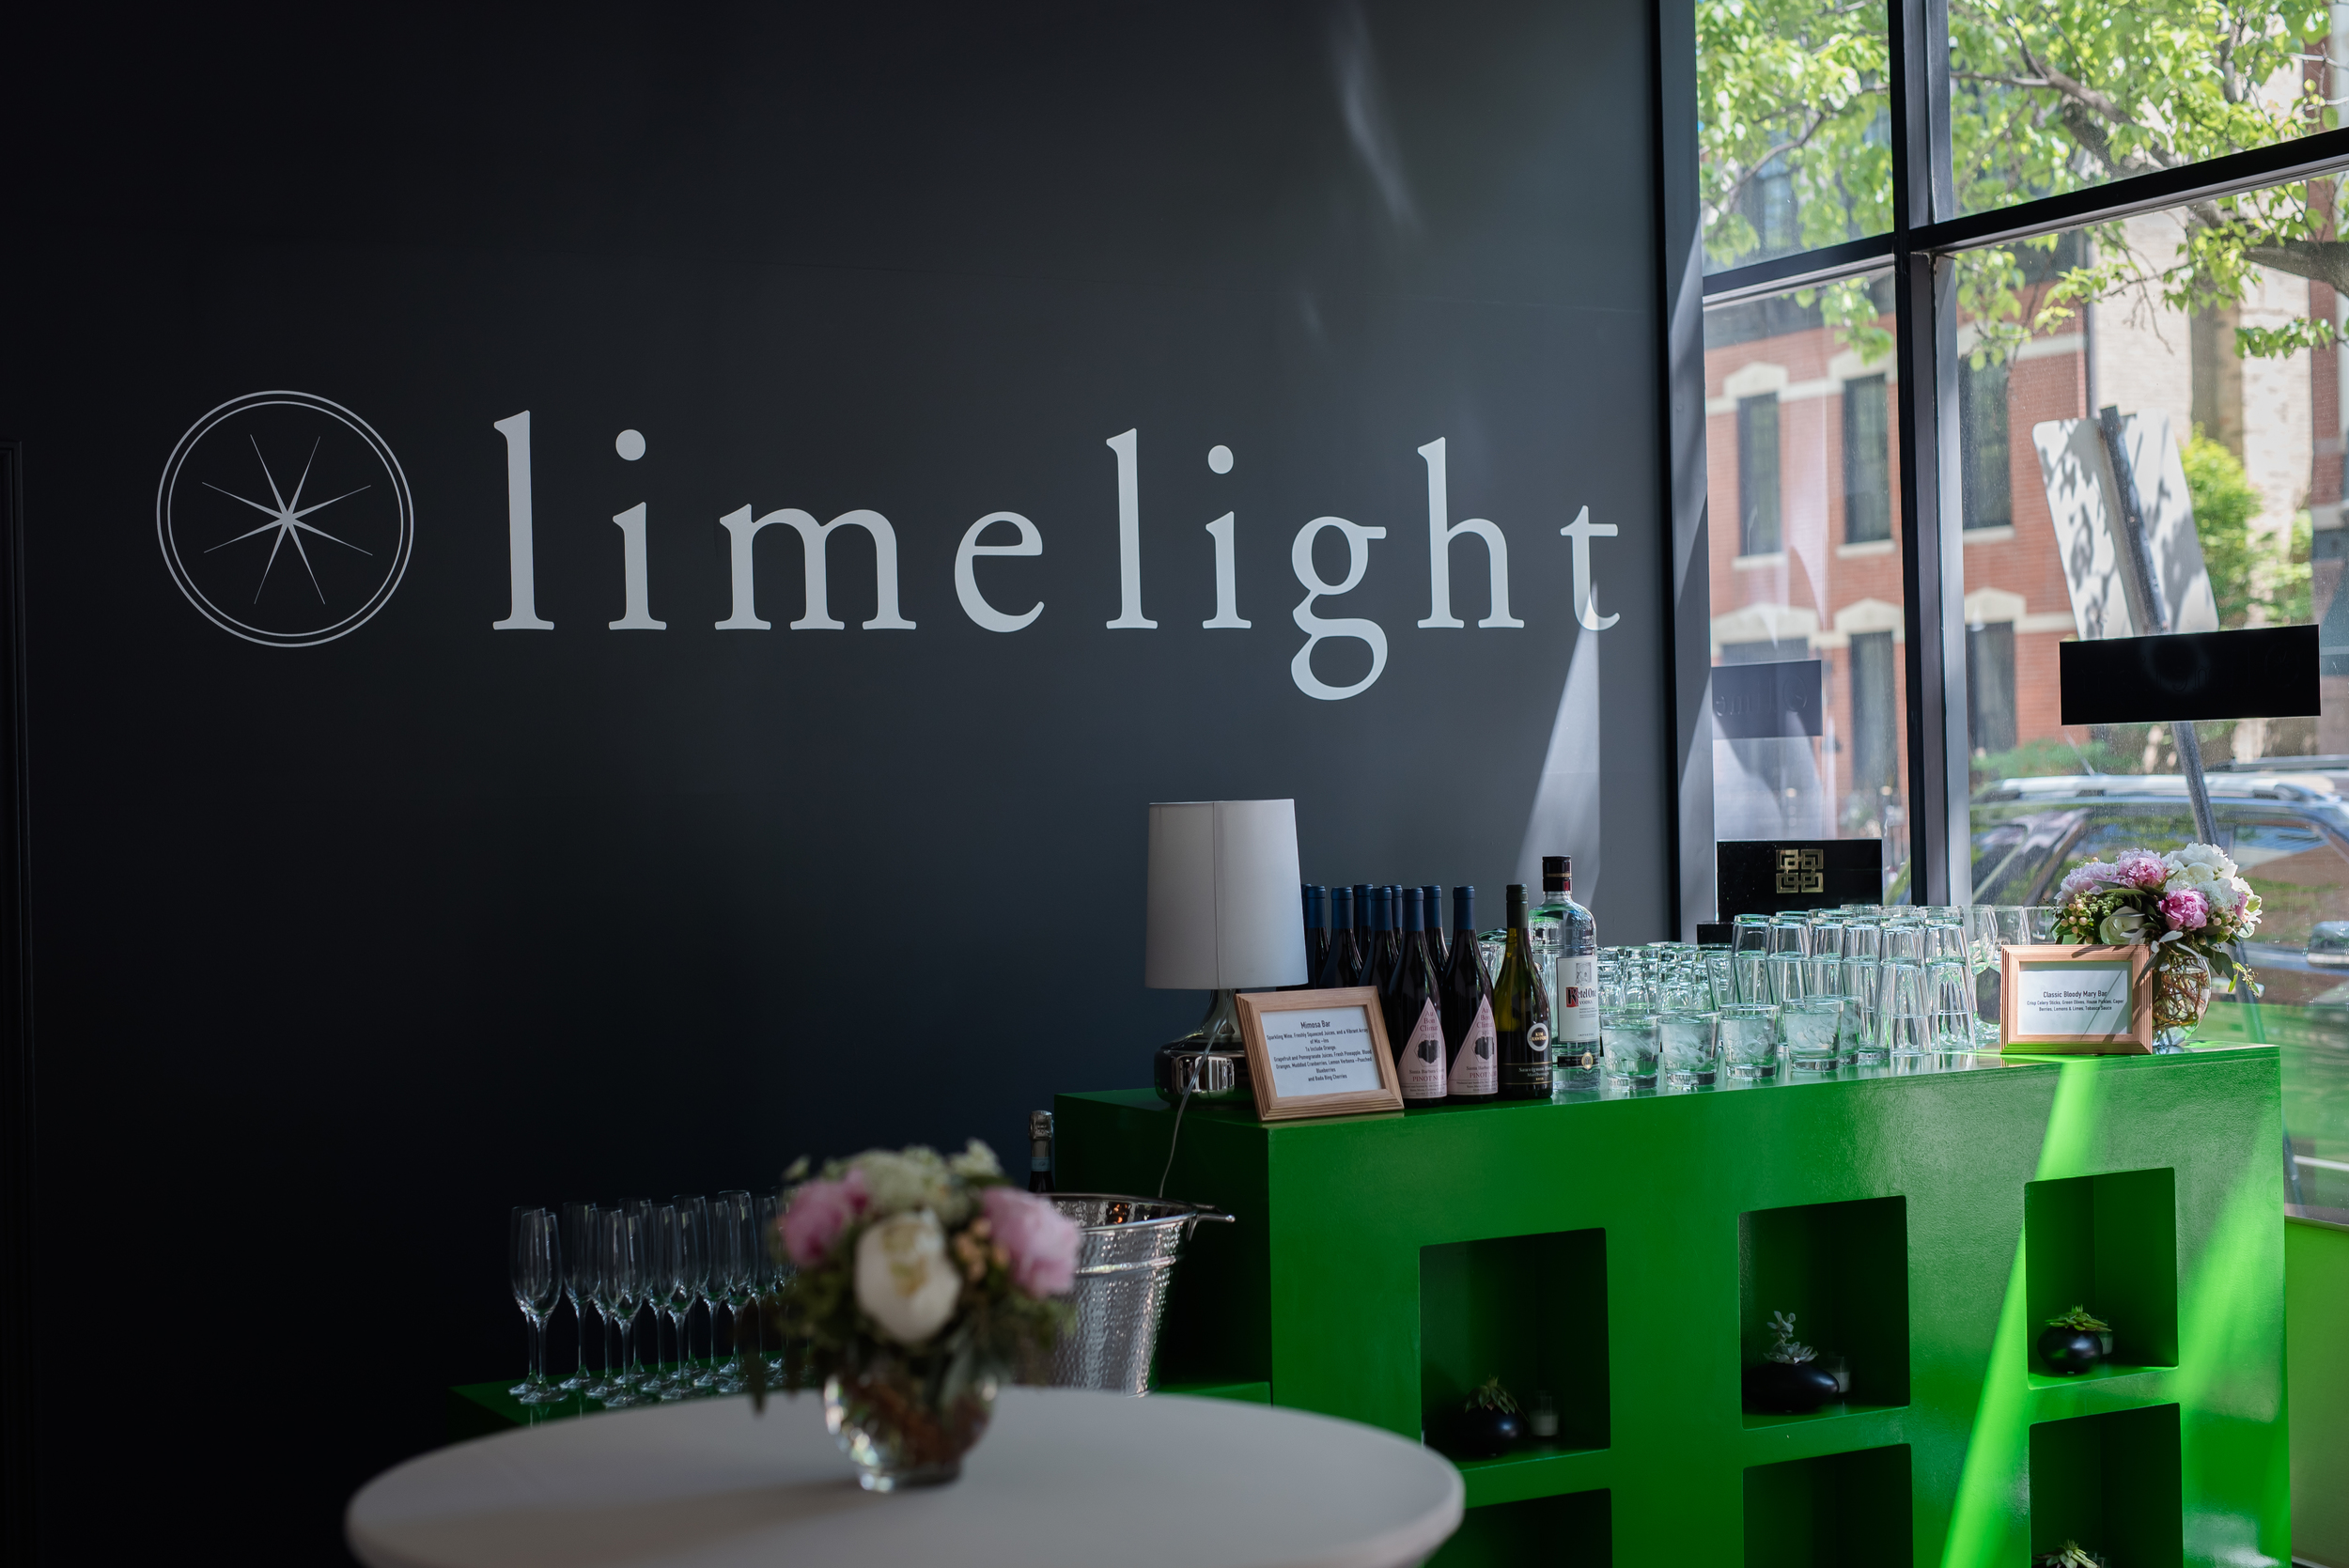 Limelight venue space